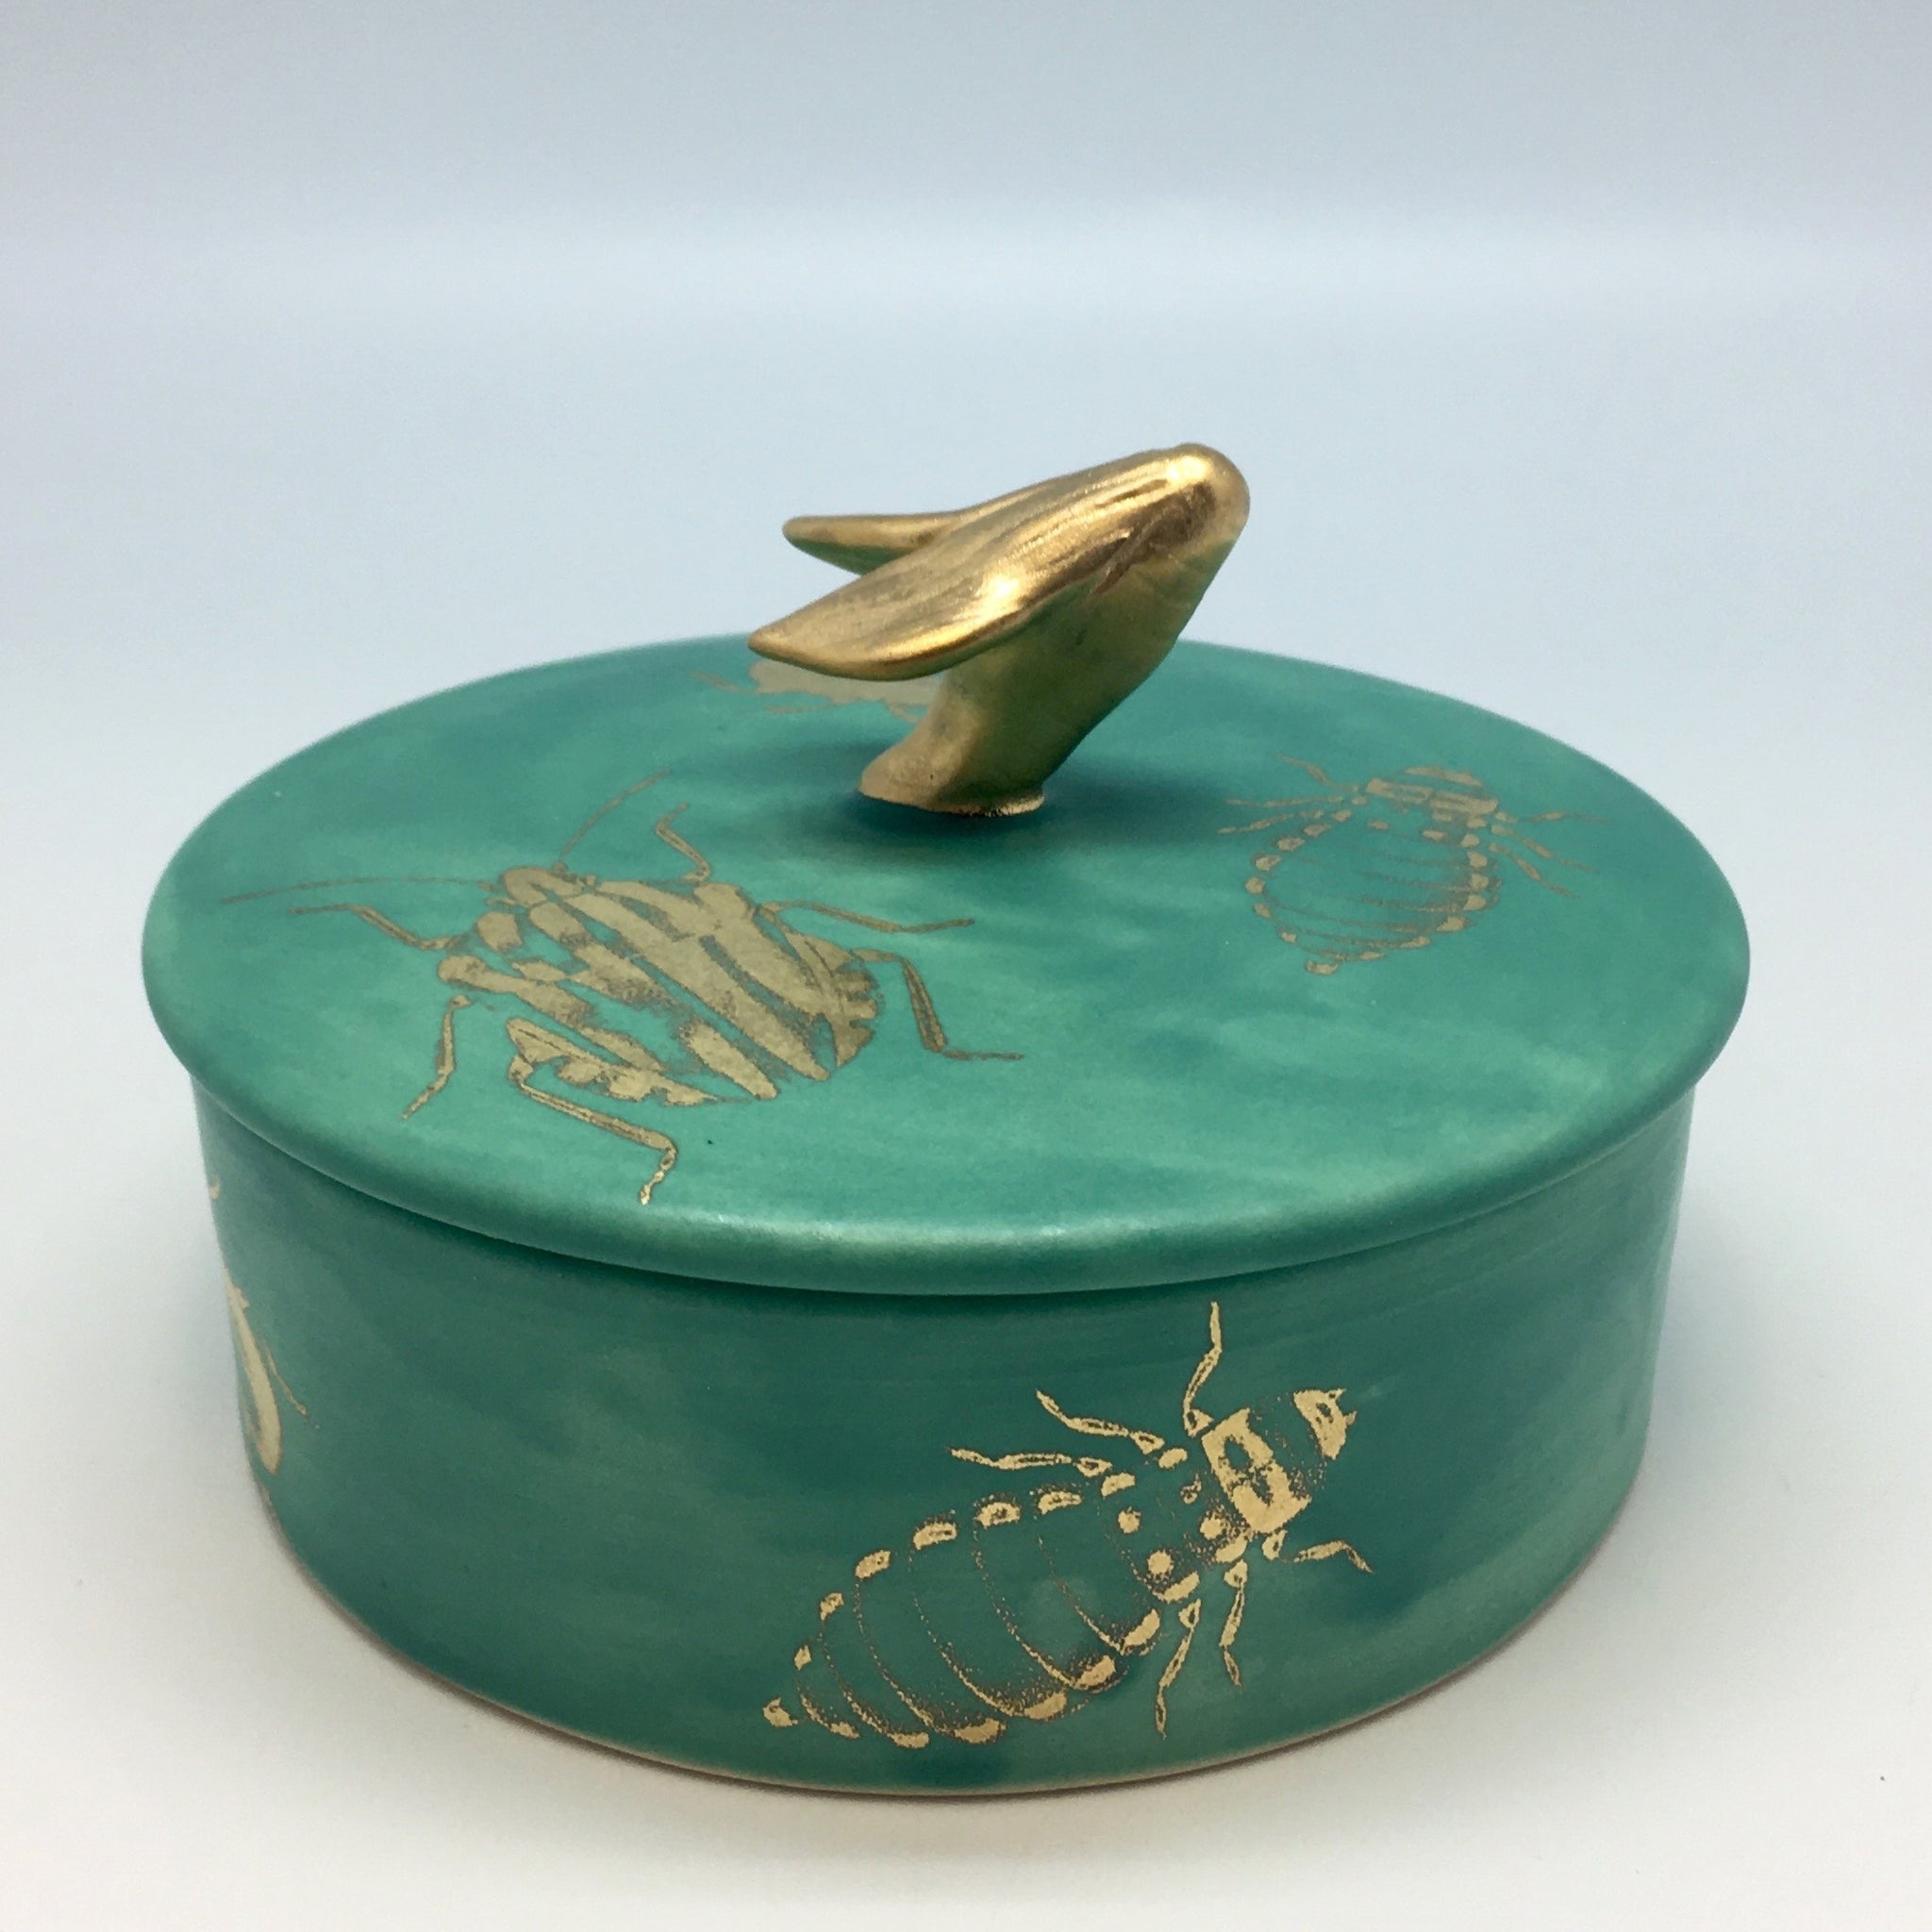 Emerald green jewlery box with golden bugs